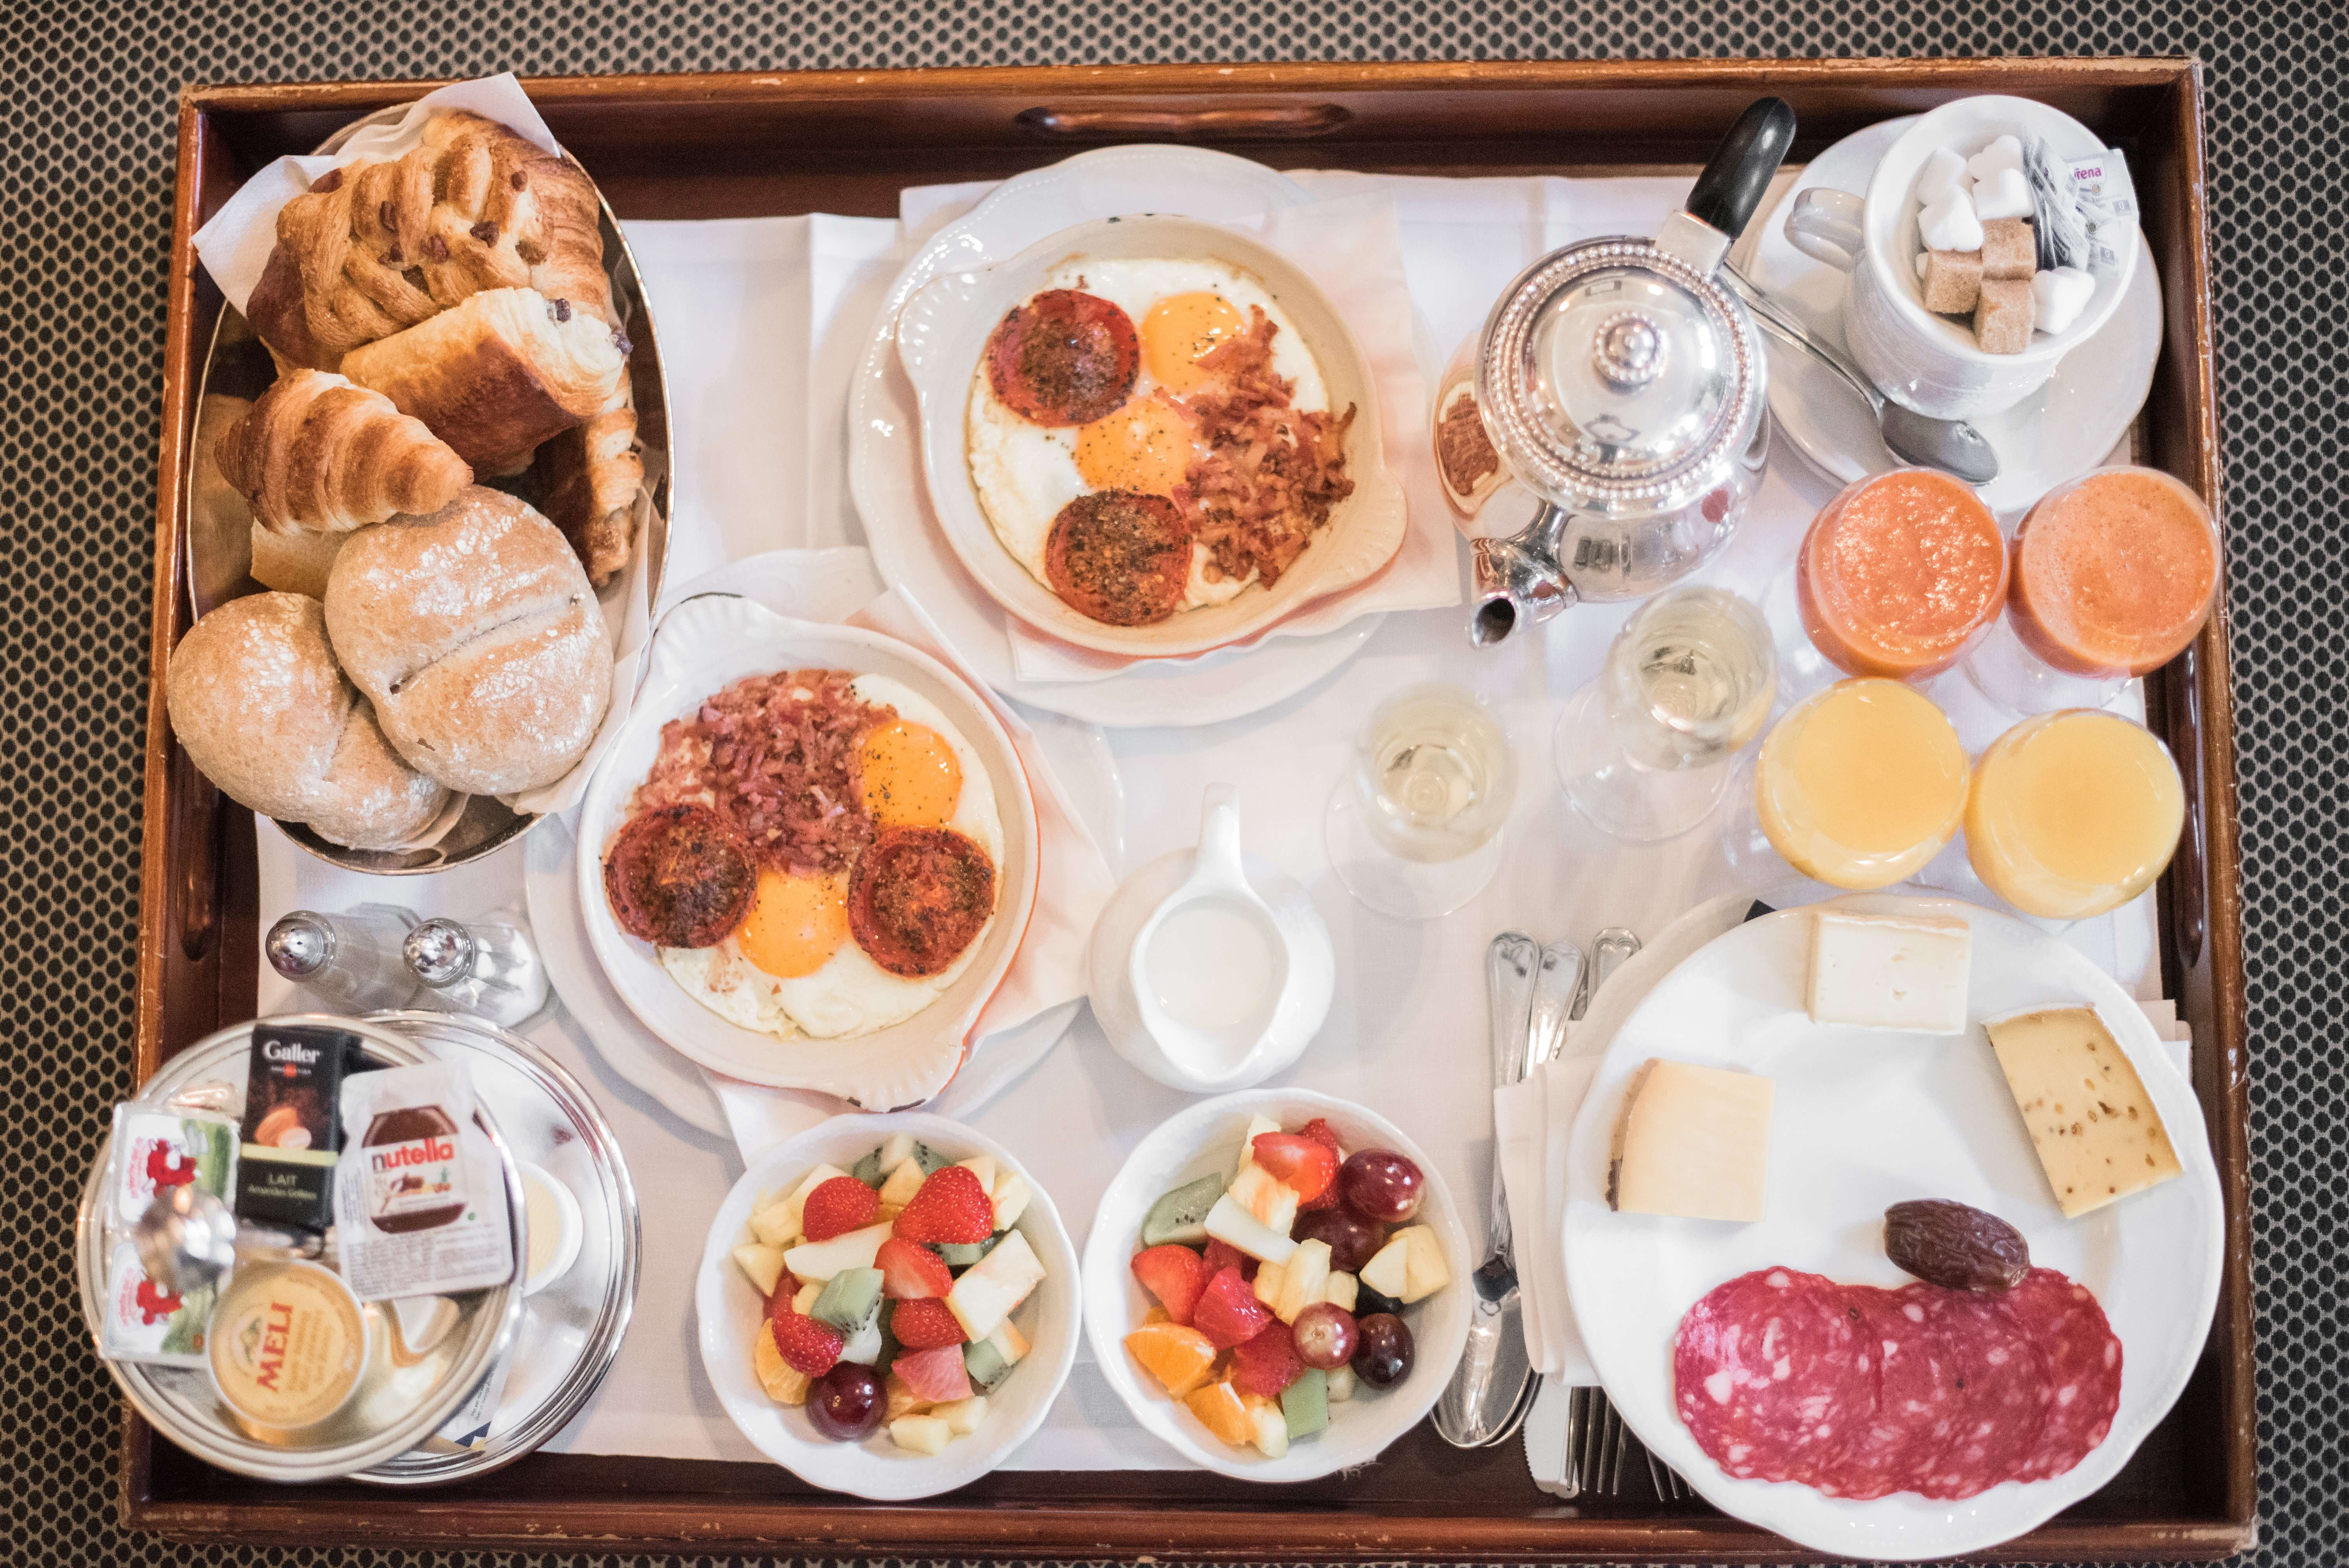 Champagne breakfast spread from The Pand Hotel